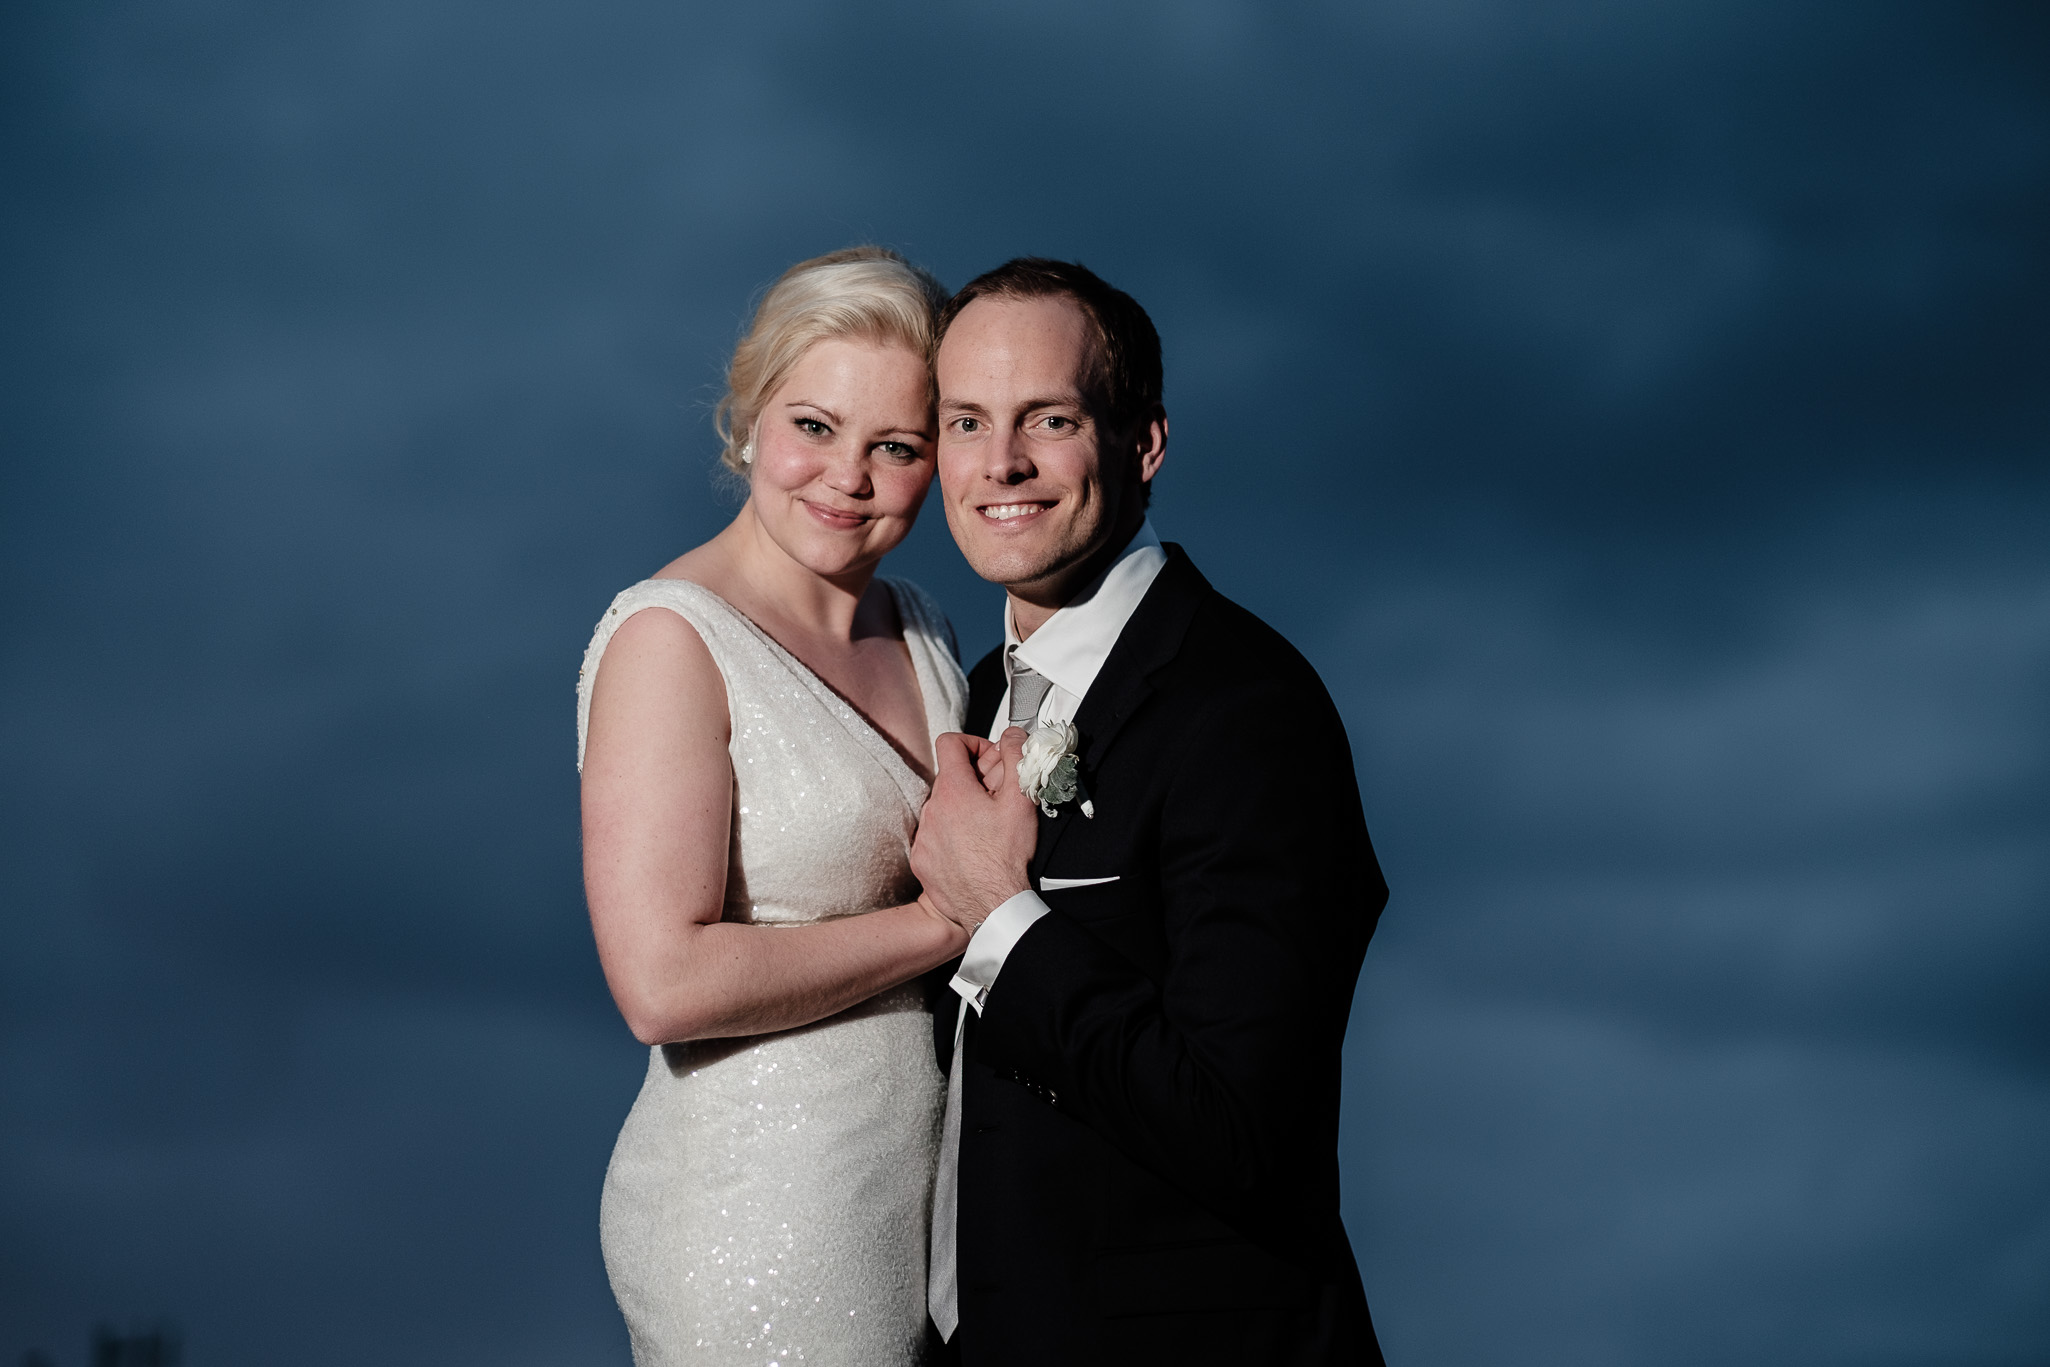 Click to enlarge image alida&jarle-bergen-ottossonphoto-4009.jpg